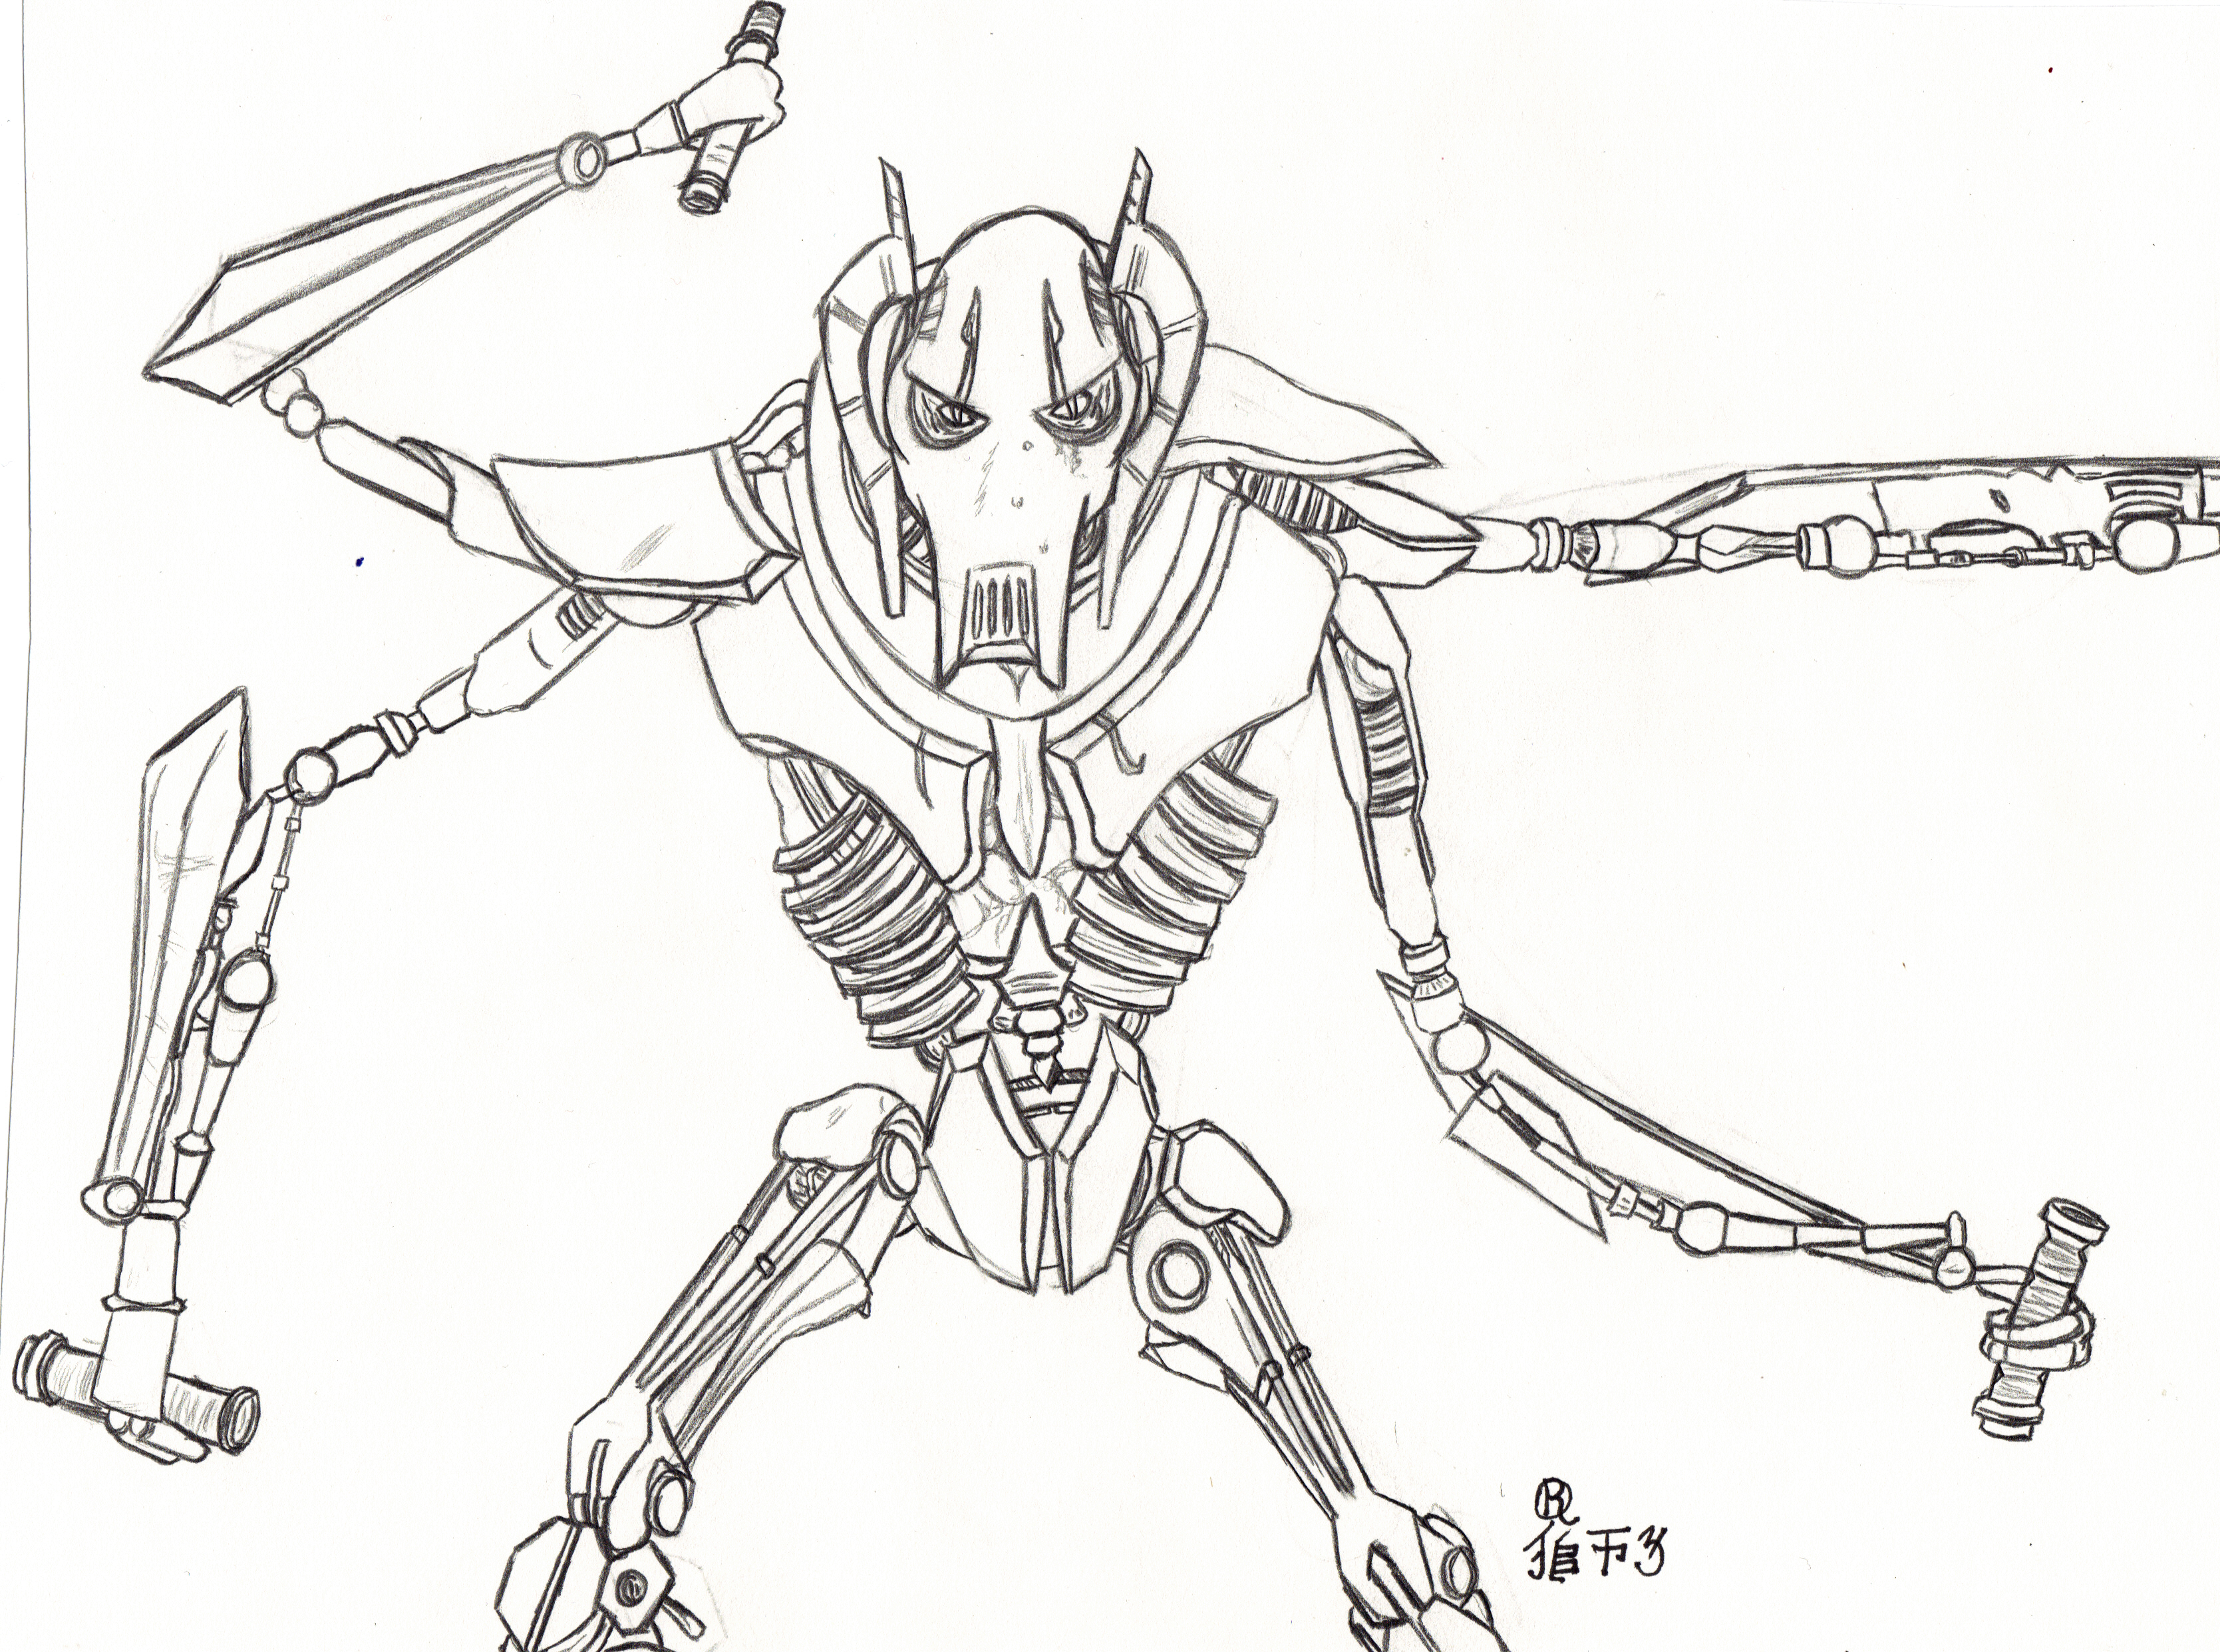 Star wars general grievous by lionofdemise on deviantart for General grievous coloring page